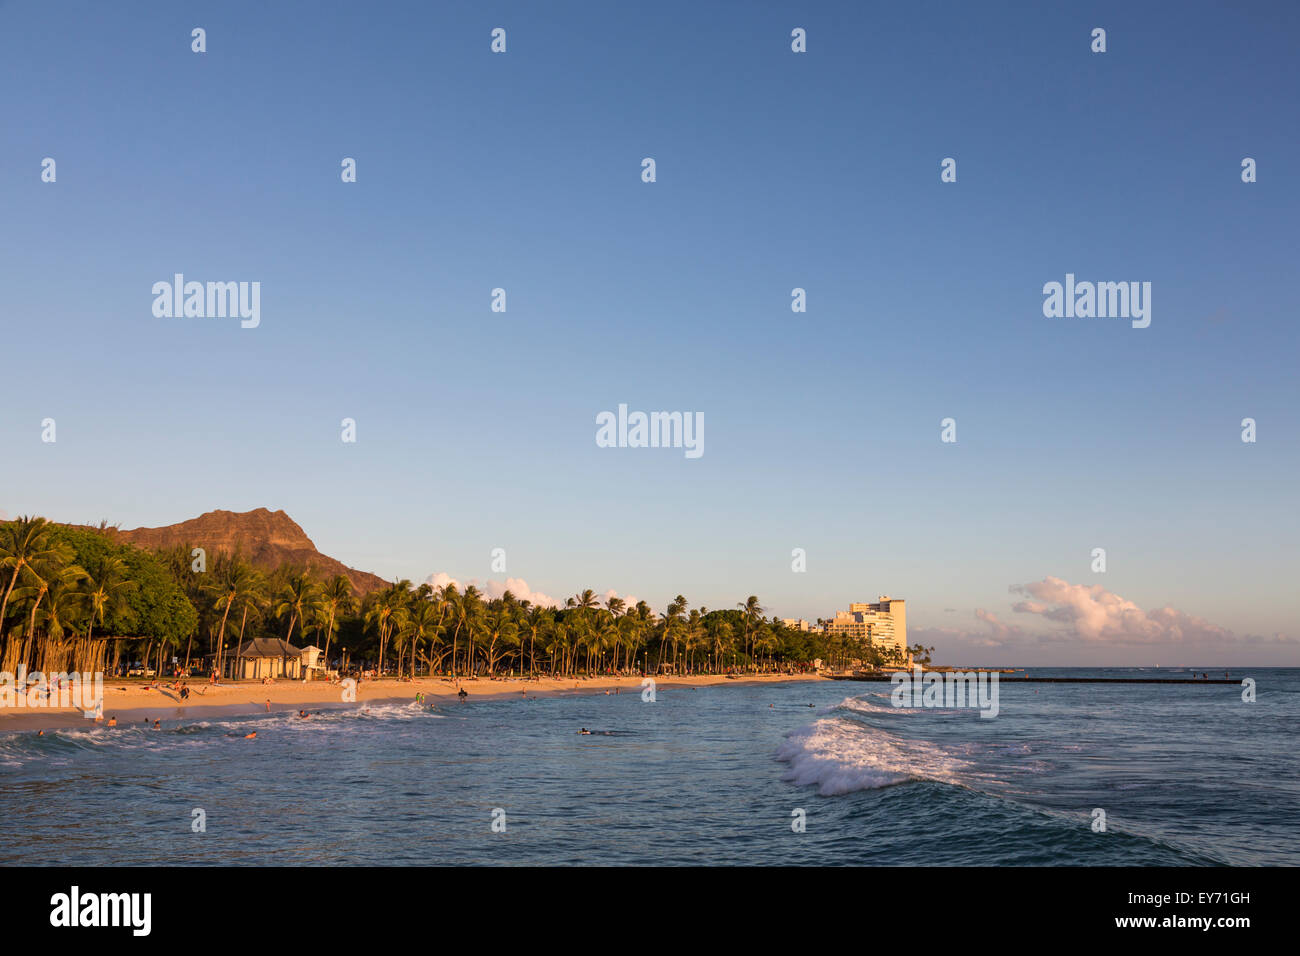 Queen's Surf Beach in Waikiki with a view Diamond Head at sunset. - Stock Image